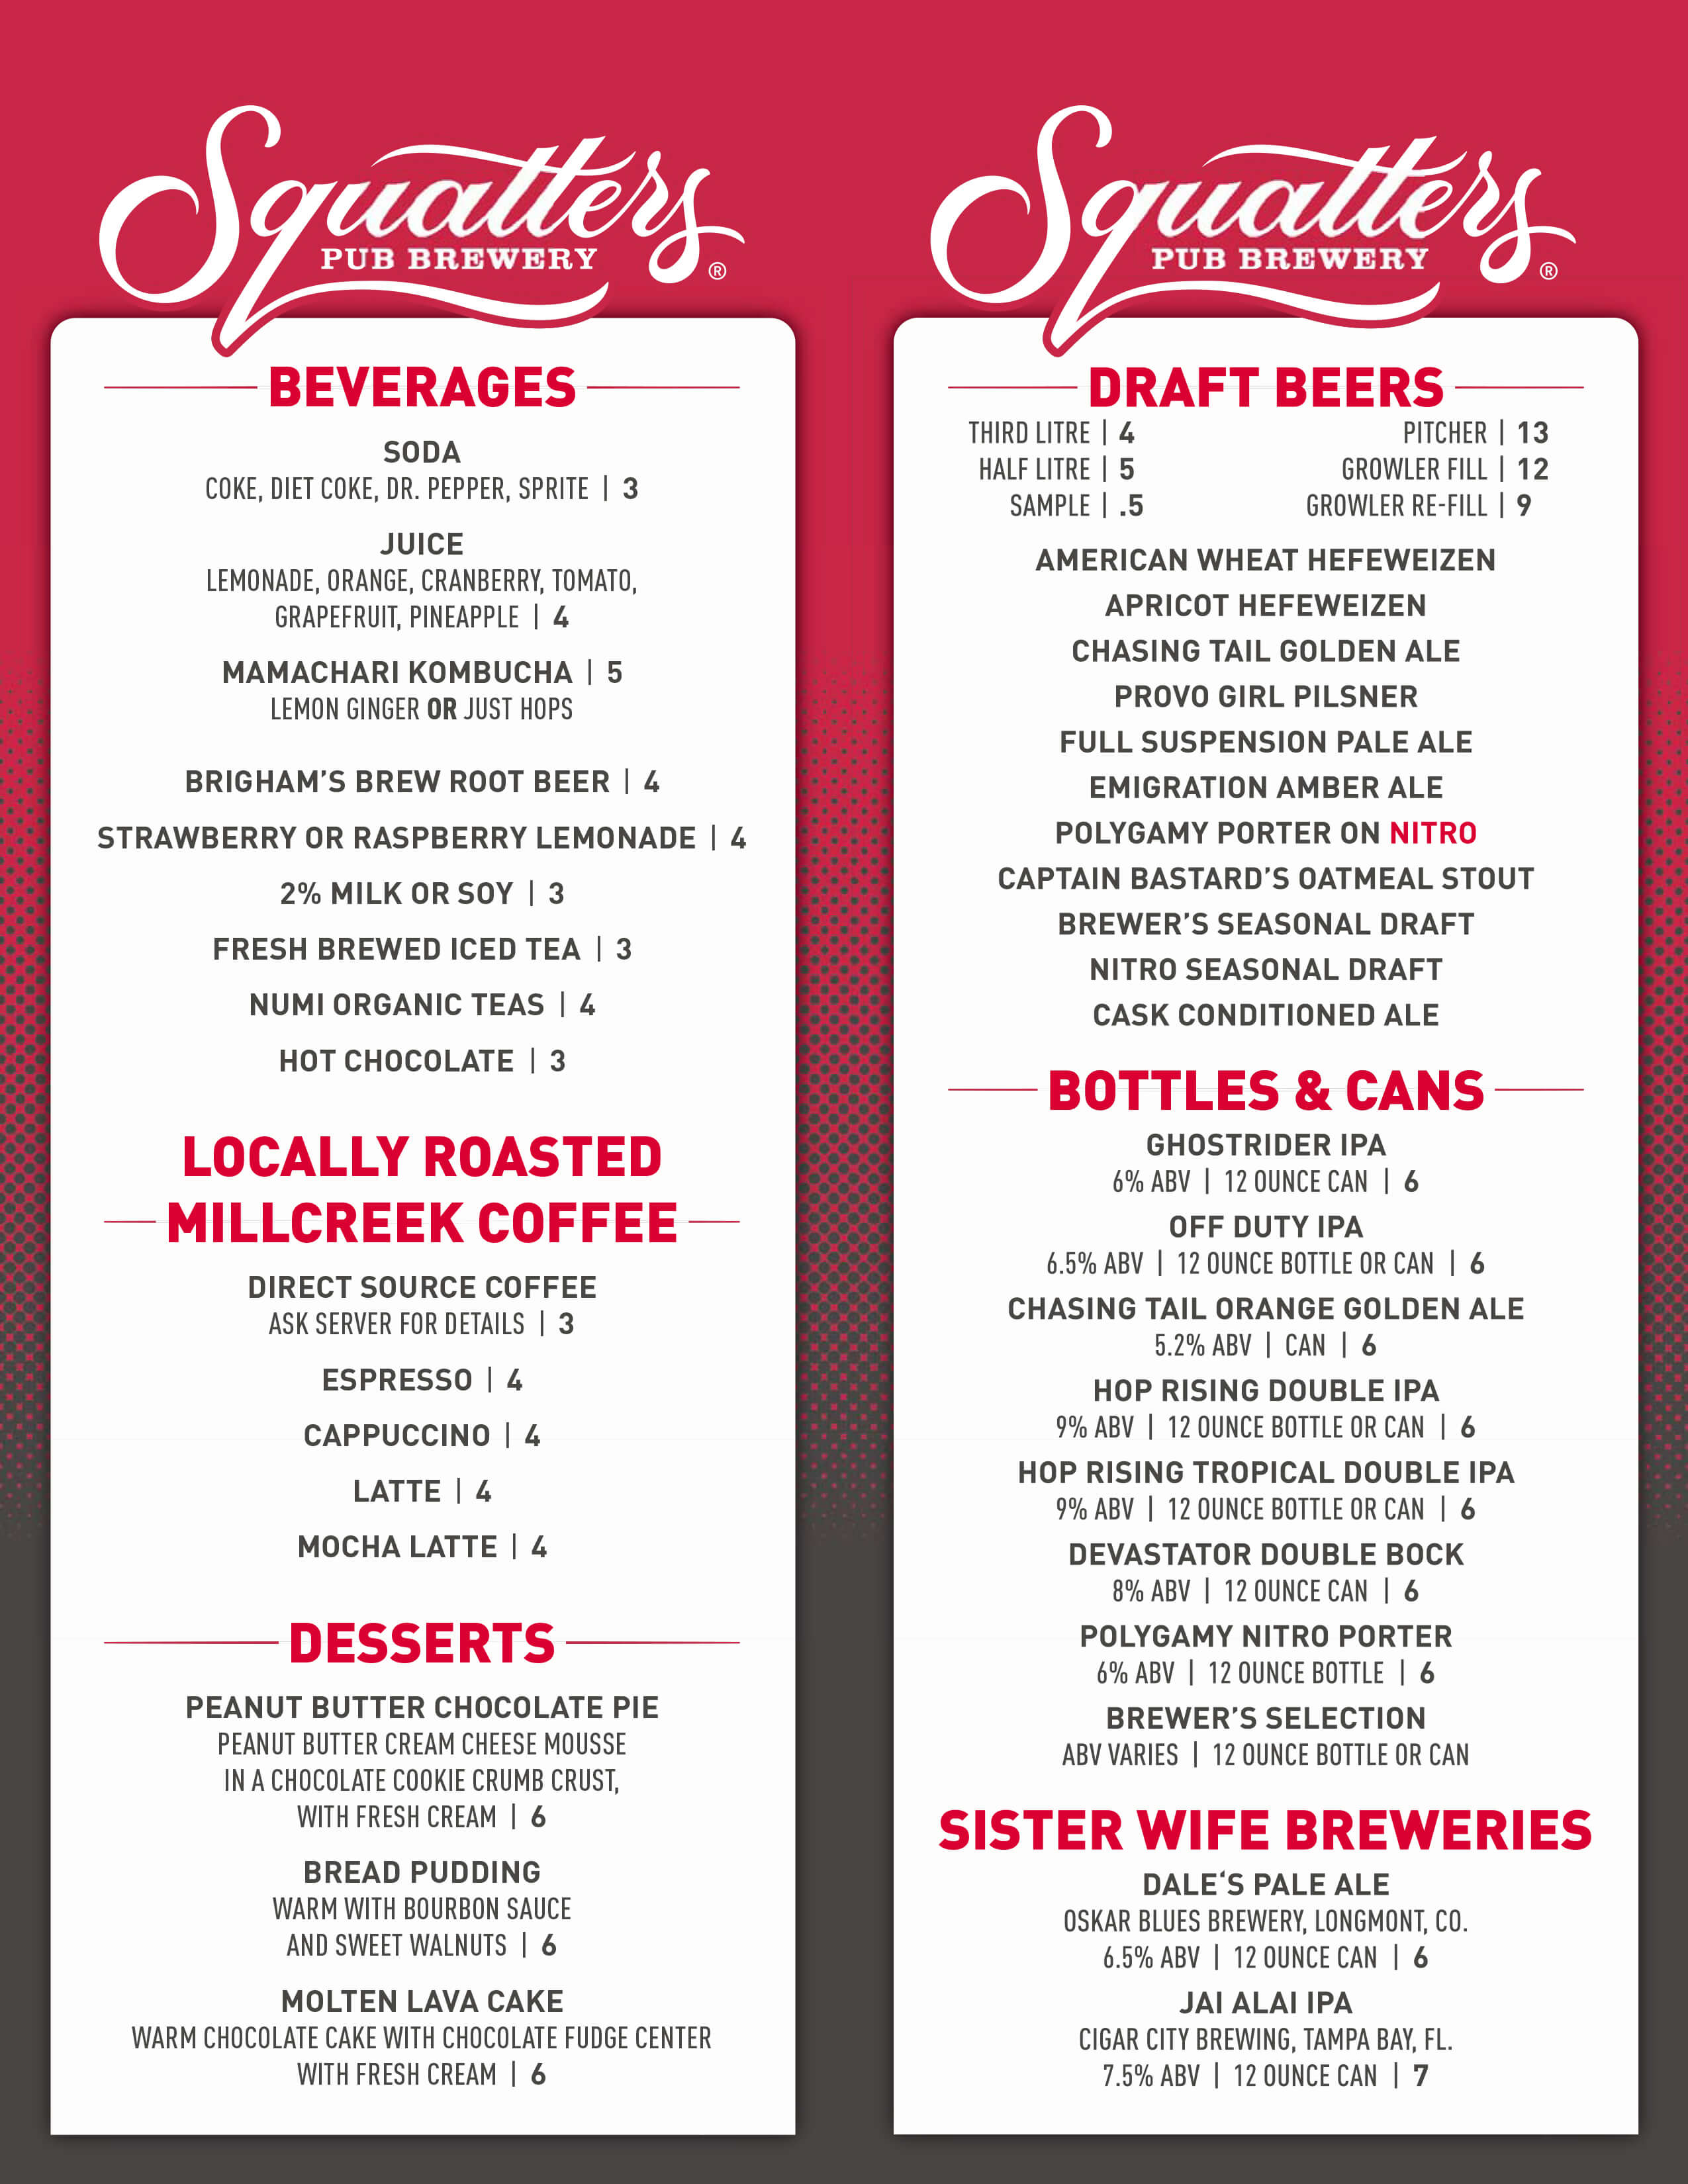 Squatters brew pub Table beer menu